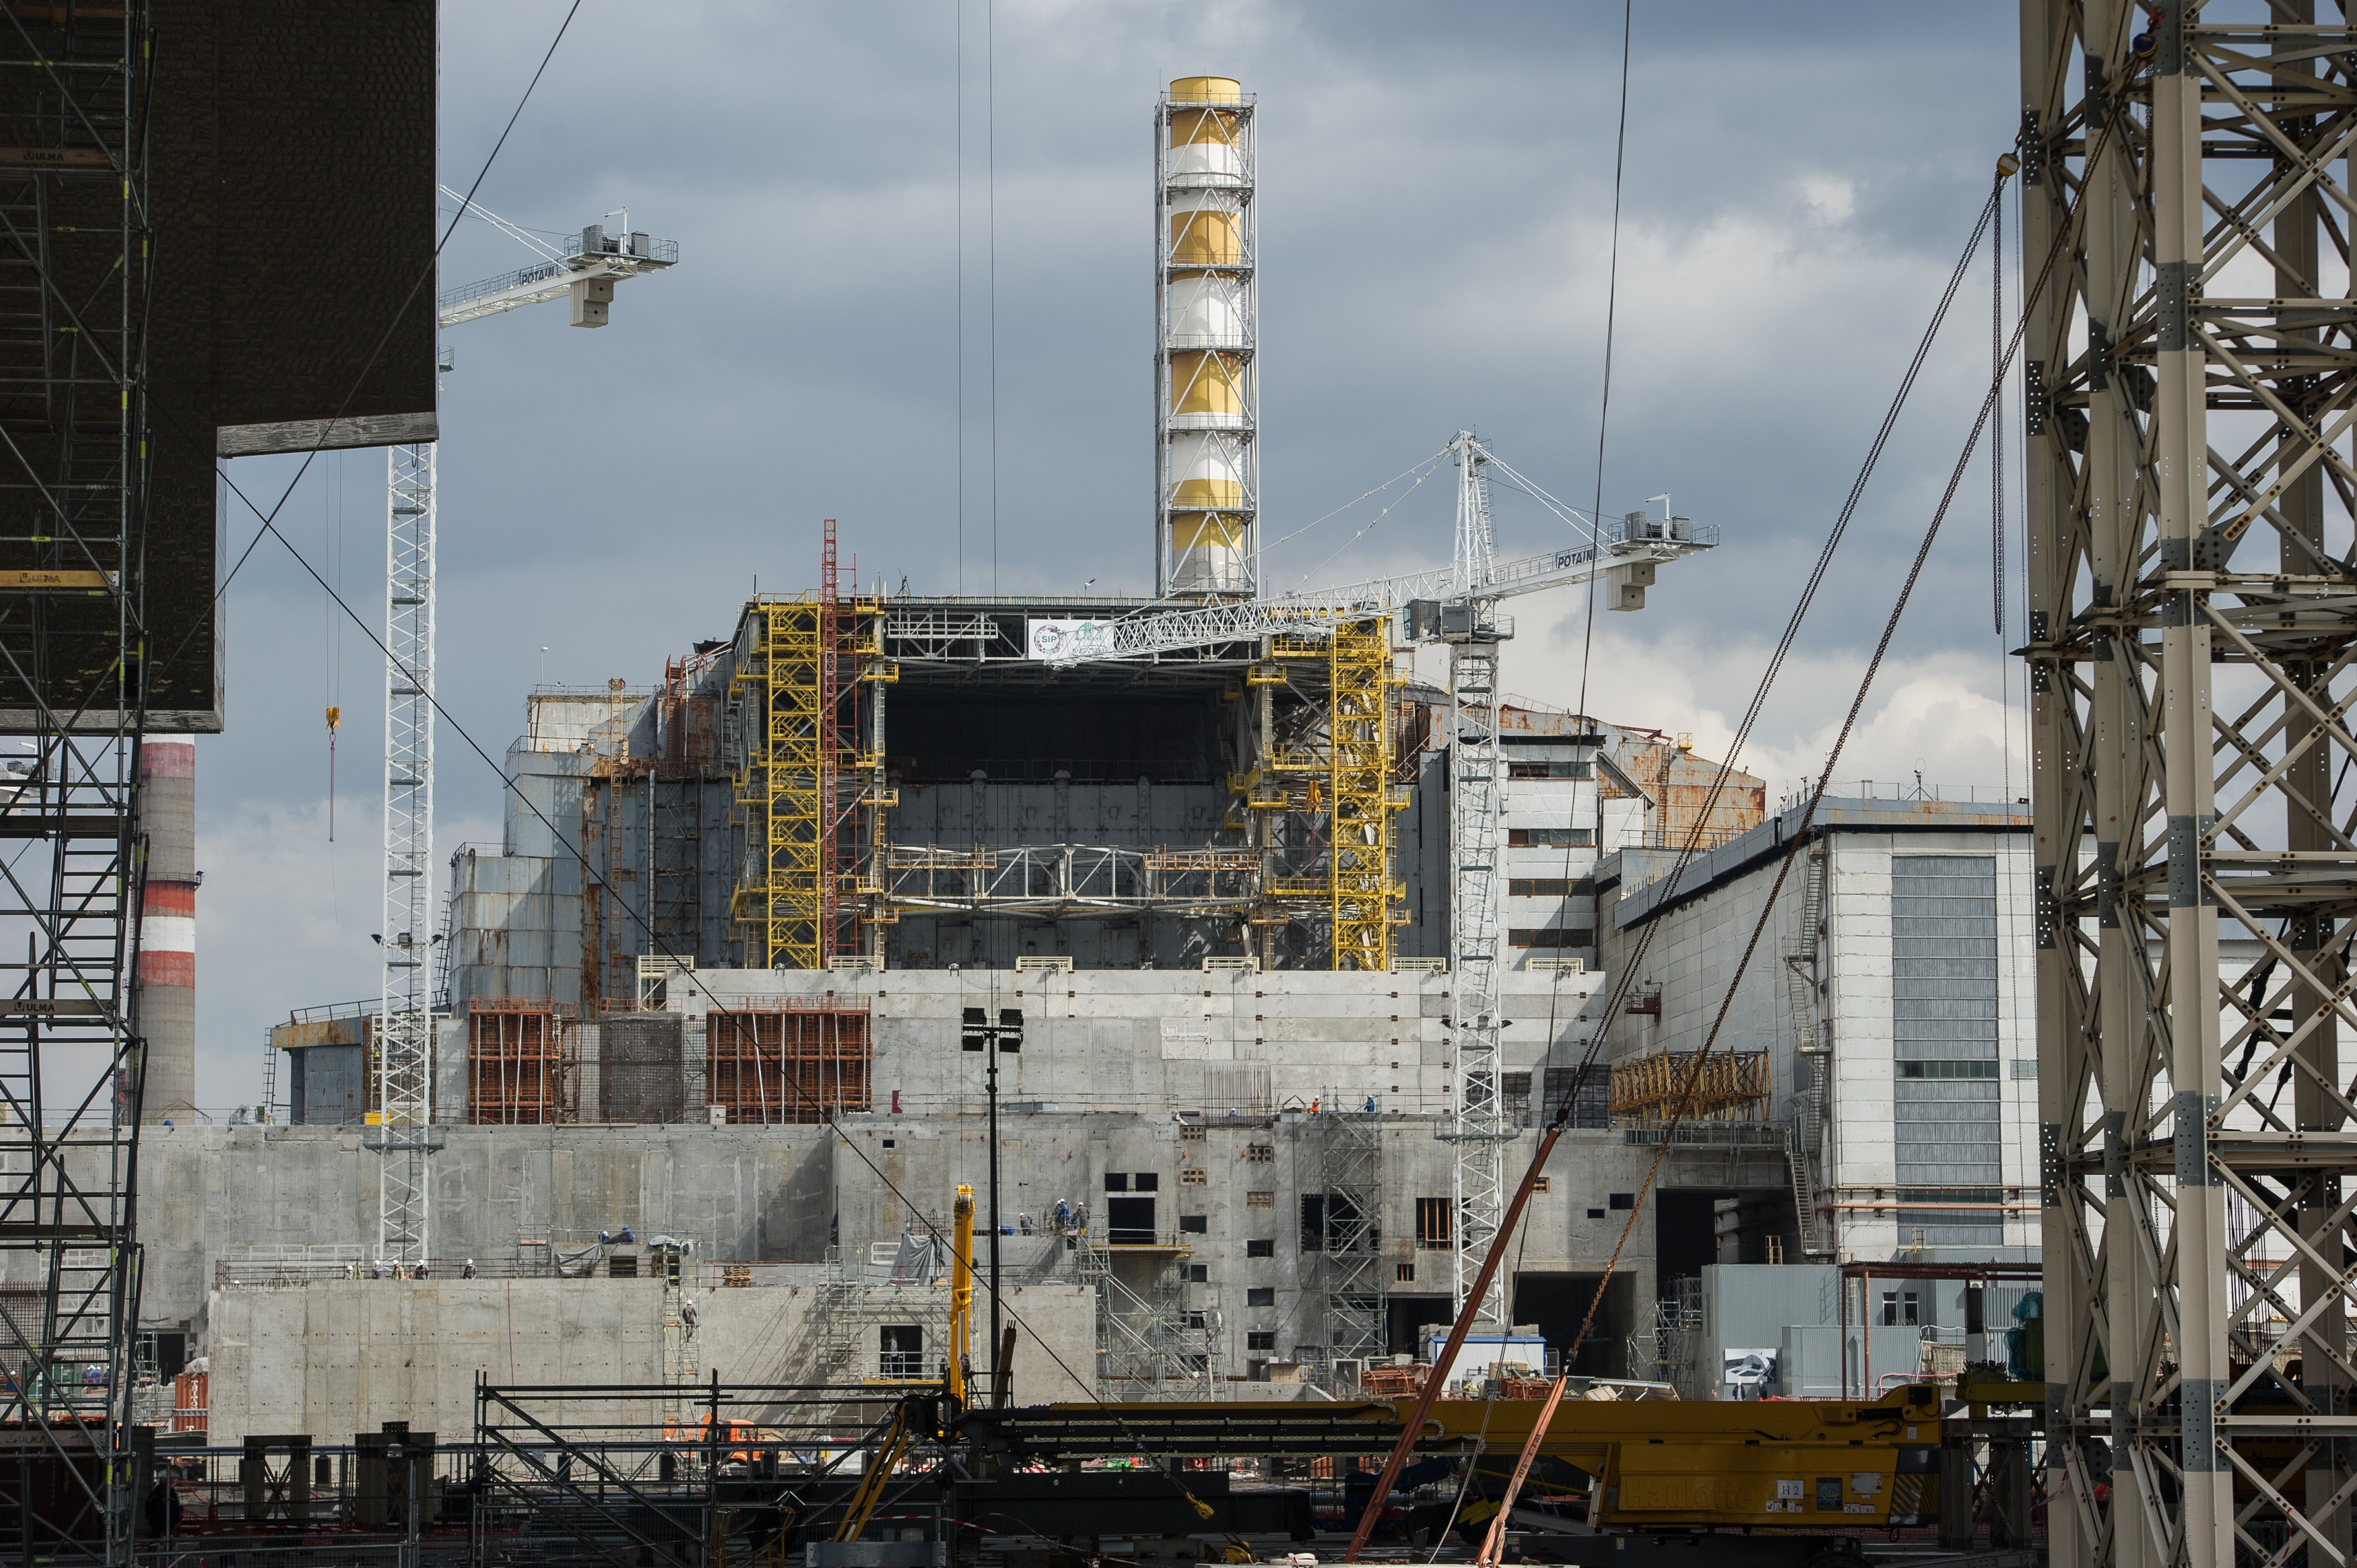 The fourth reactor of the Chernobyl Nuclear Power Plant is seen through the New Safe Confinement in Chernobyl, Ukraine, April 22, 2016.